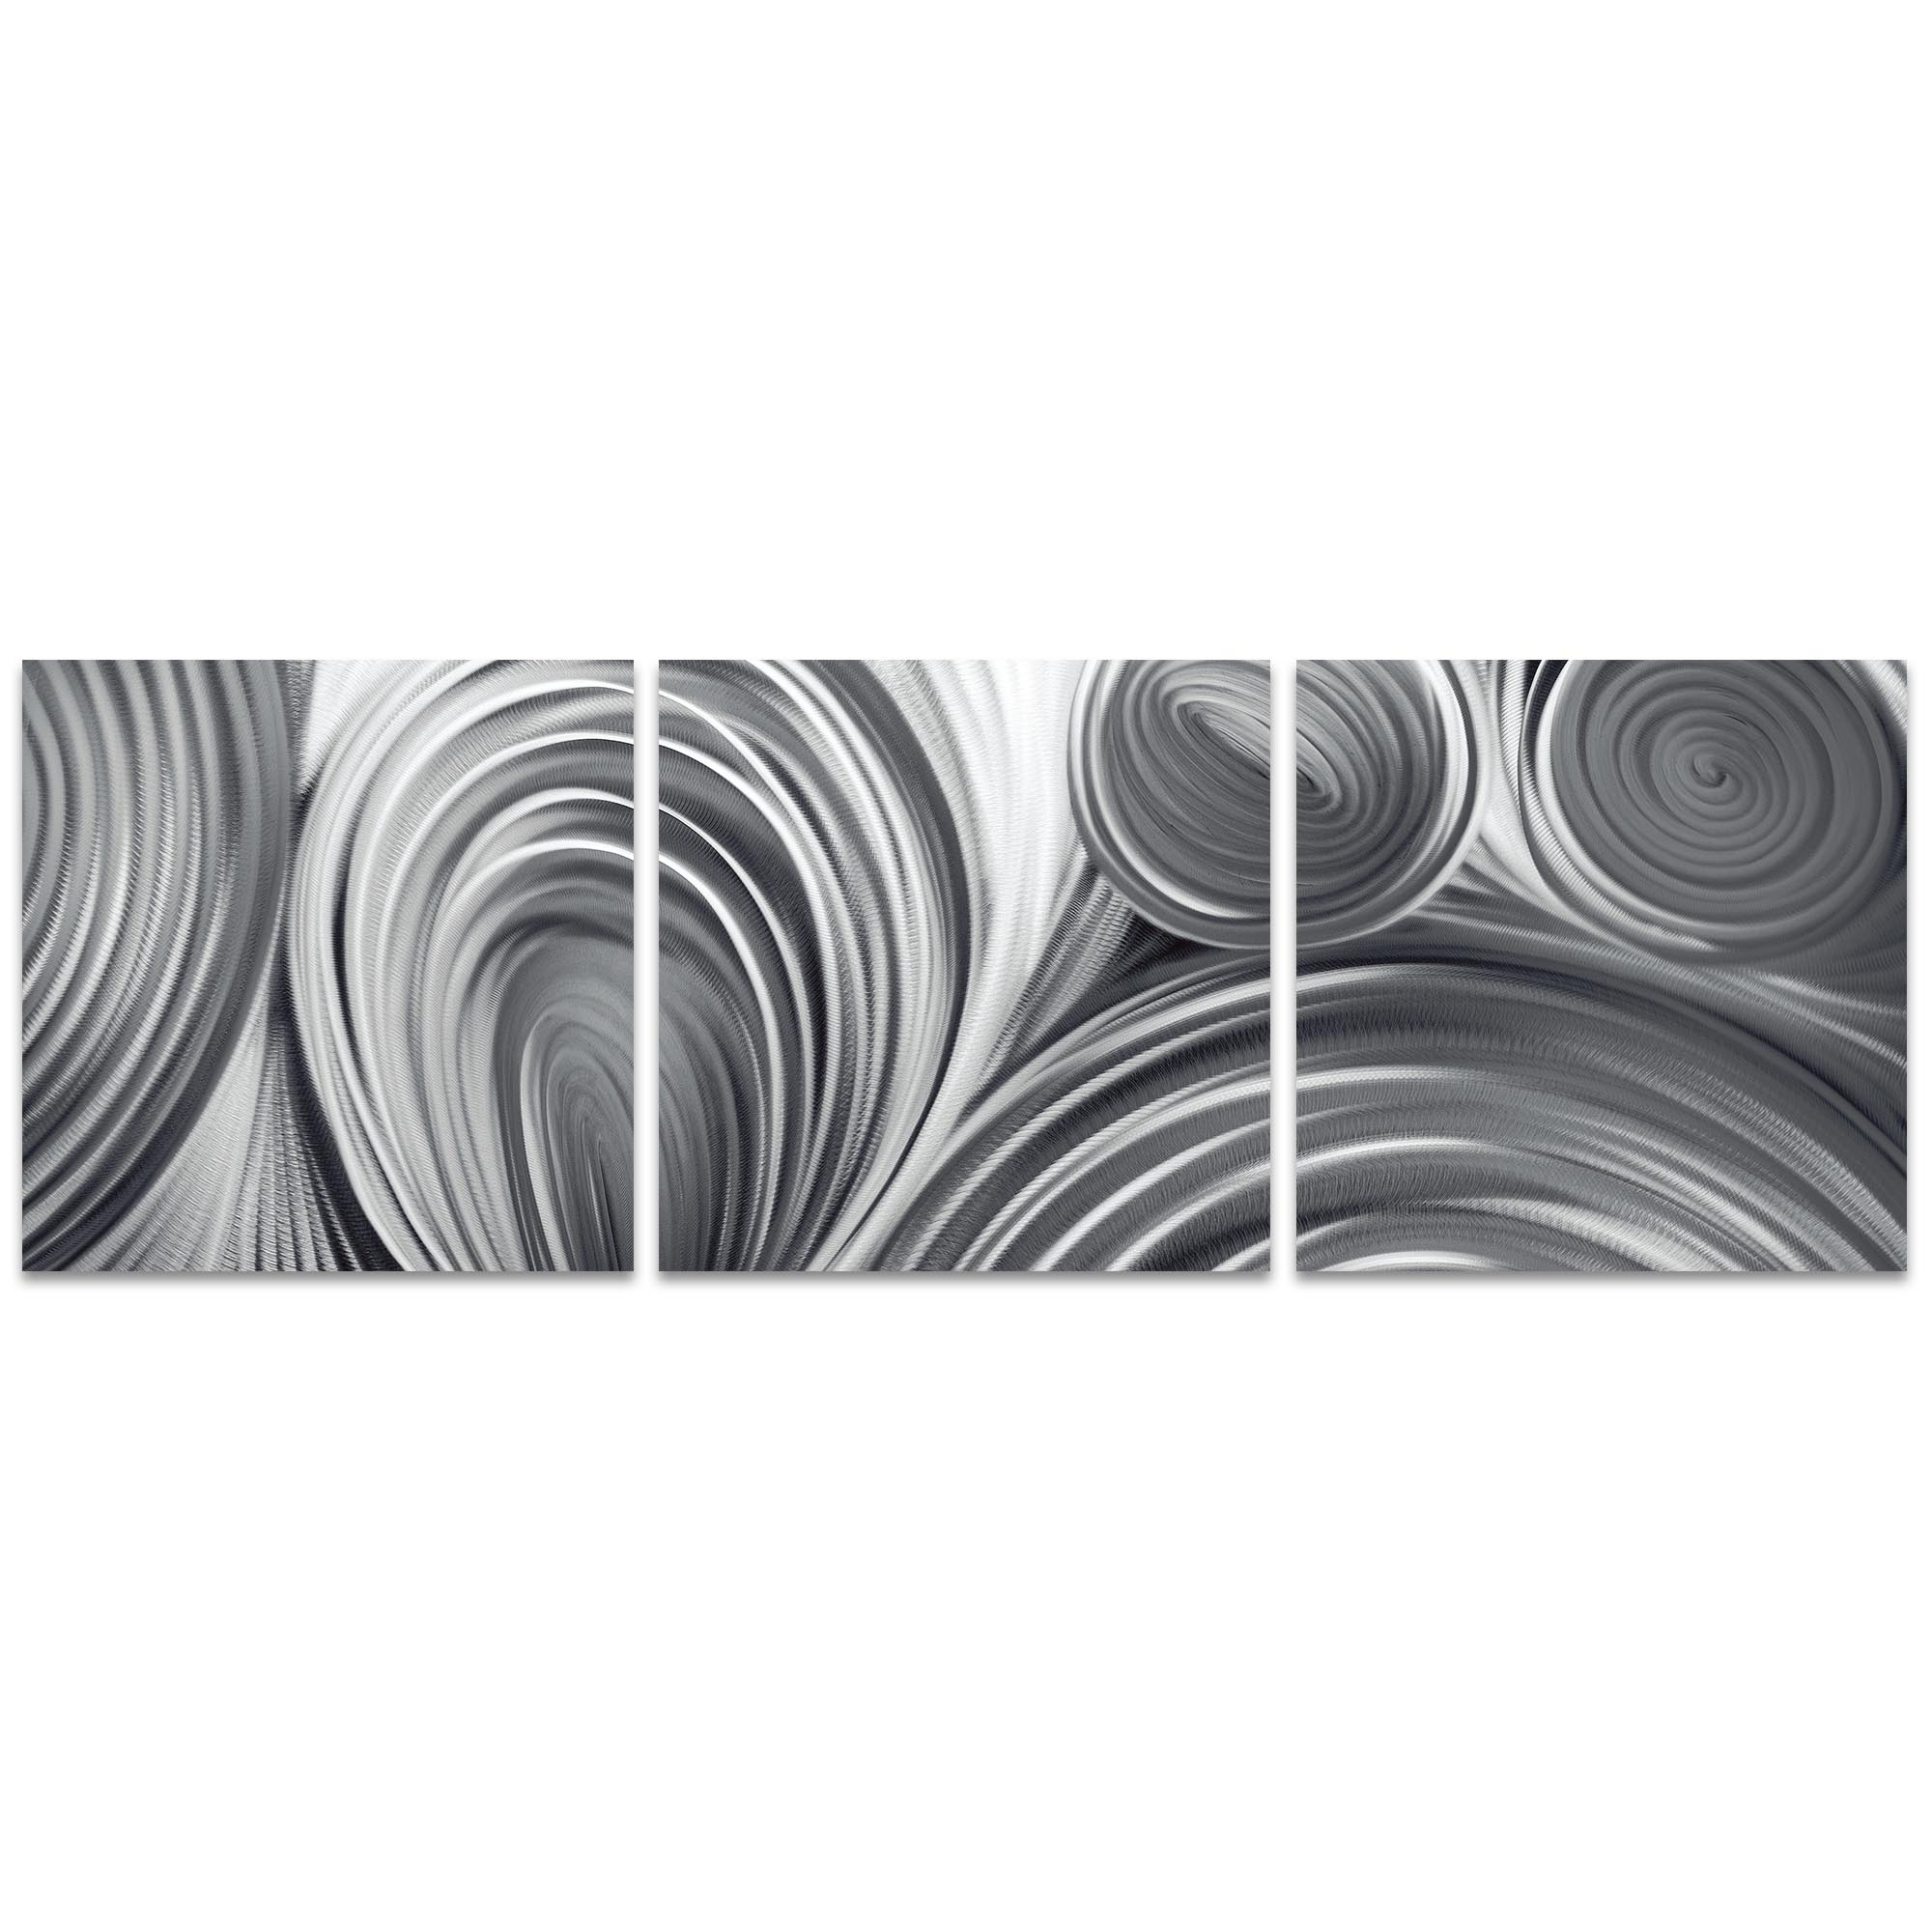 Conduction Triptych Large 70x22in. Metal or Acrylic Contemporary Decor